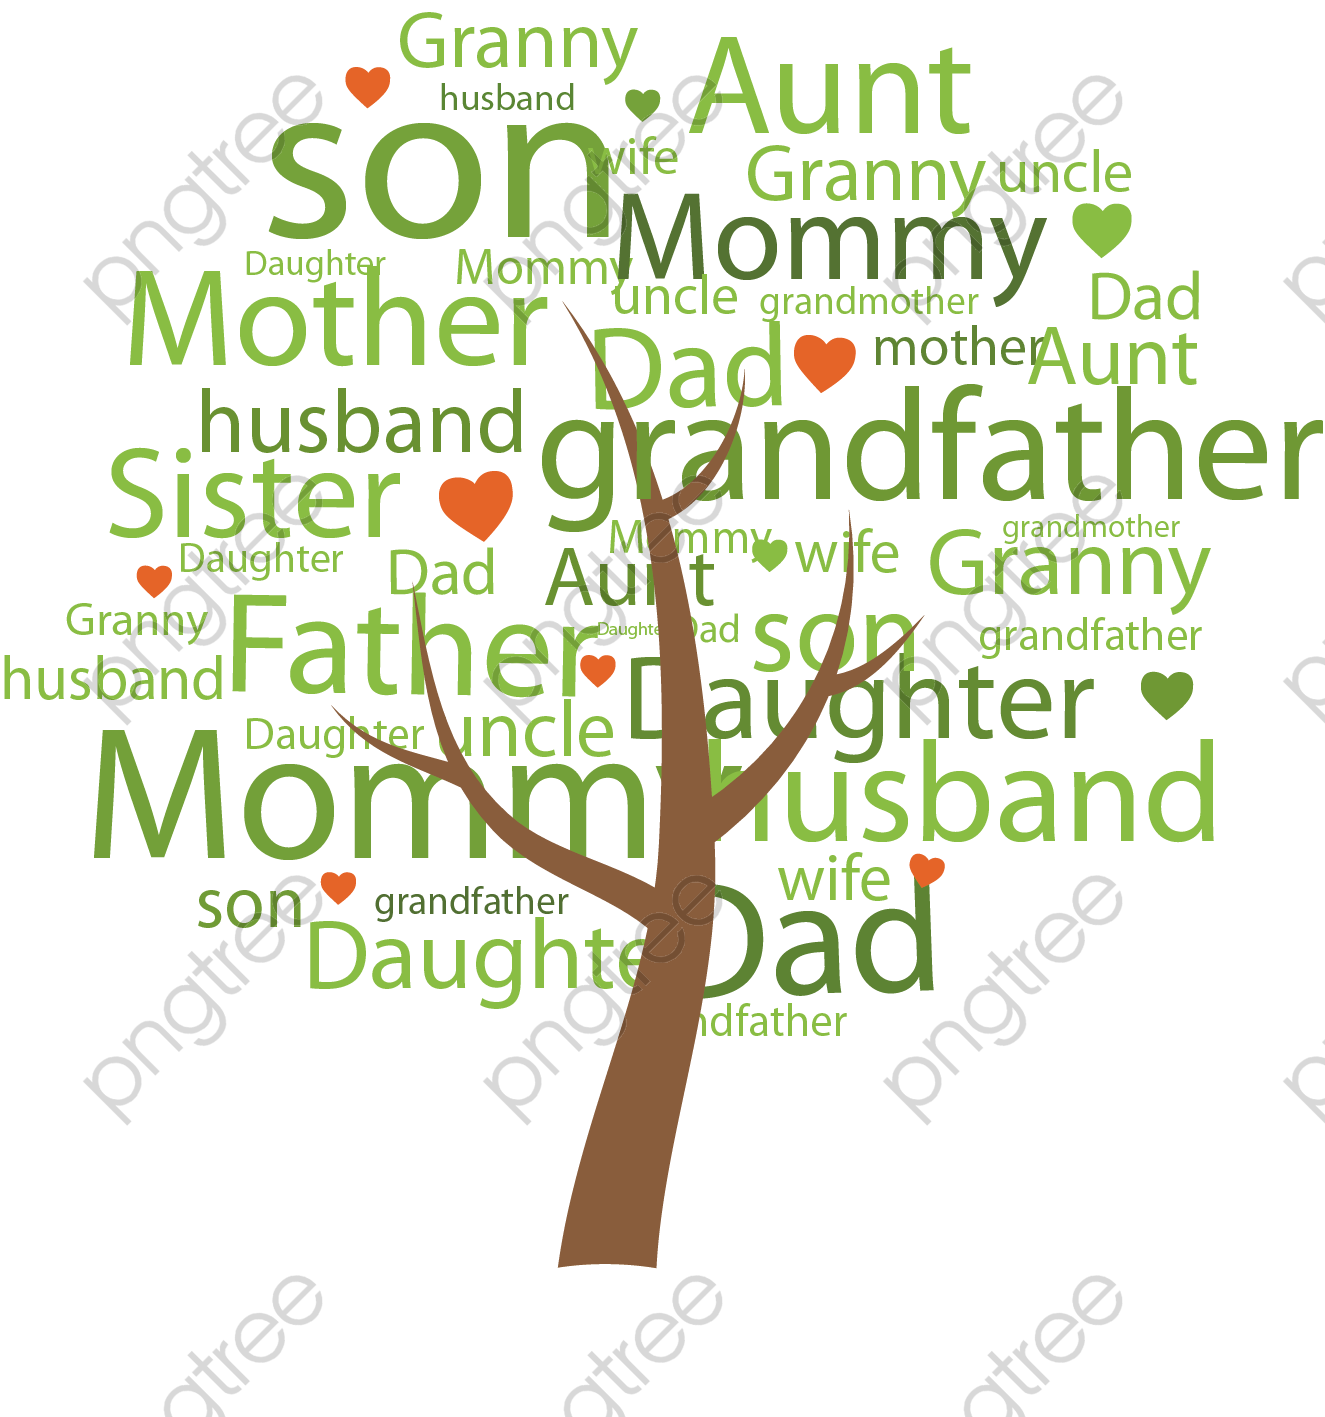 transparent family tree png format image with size 1325 1417 preview page